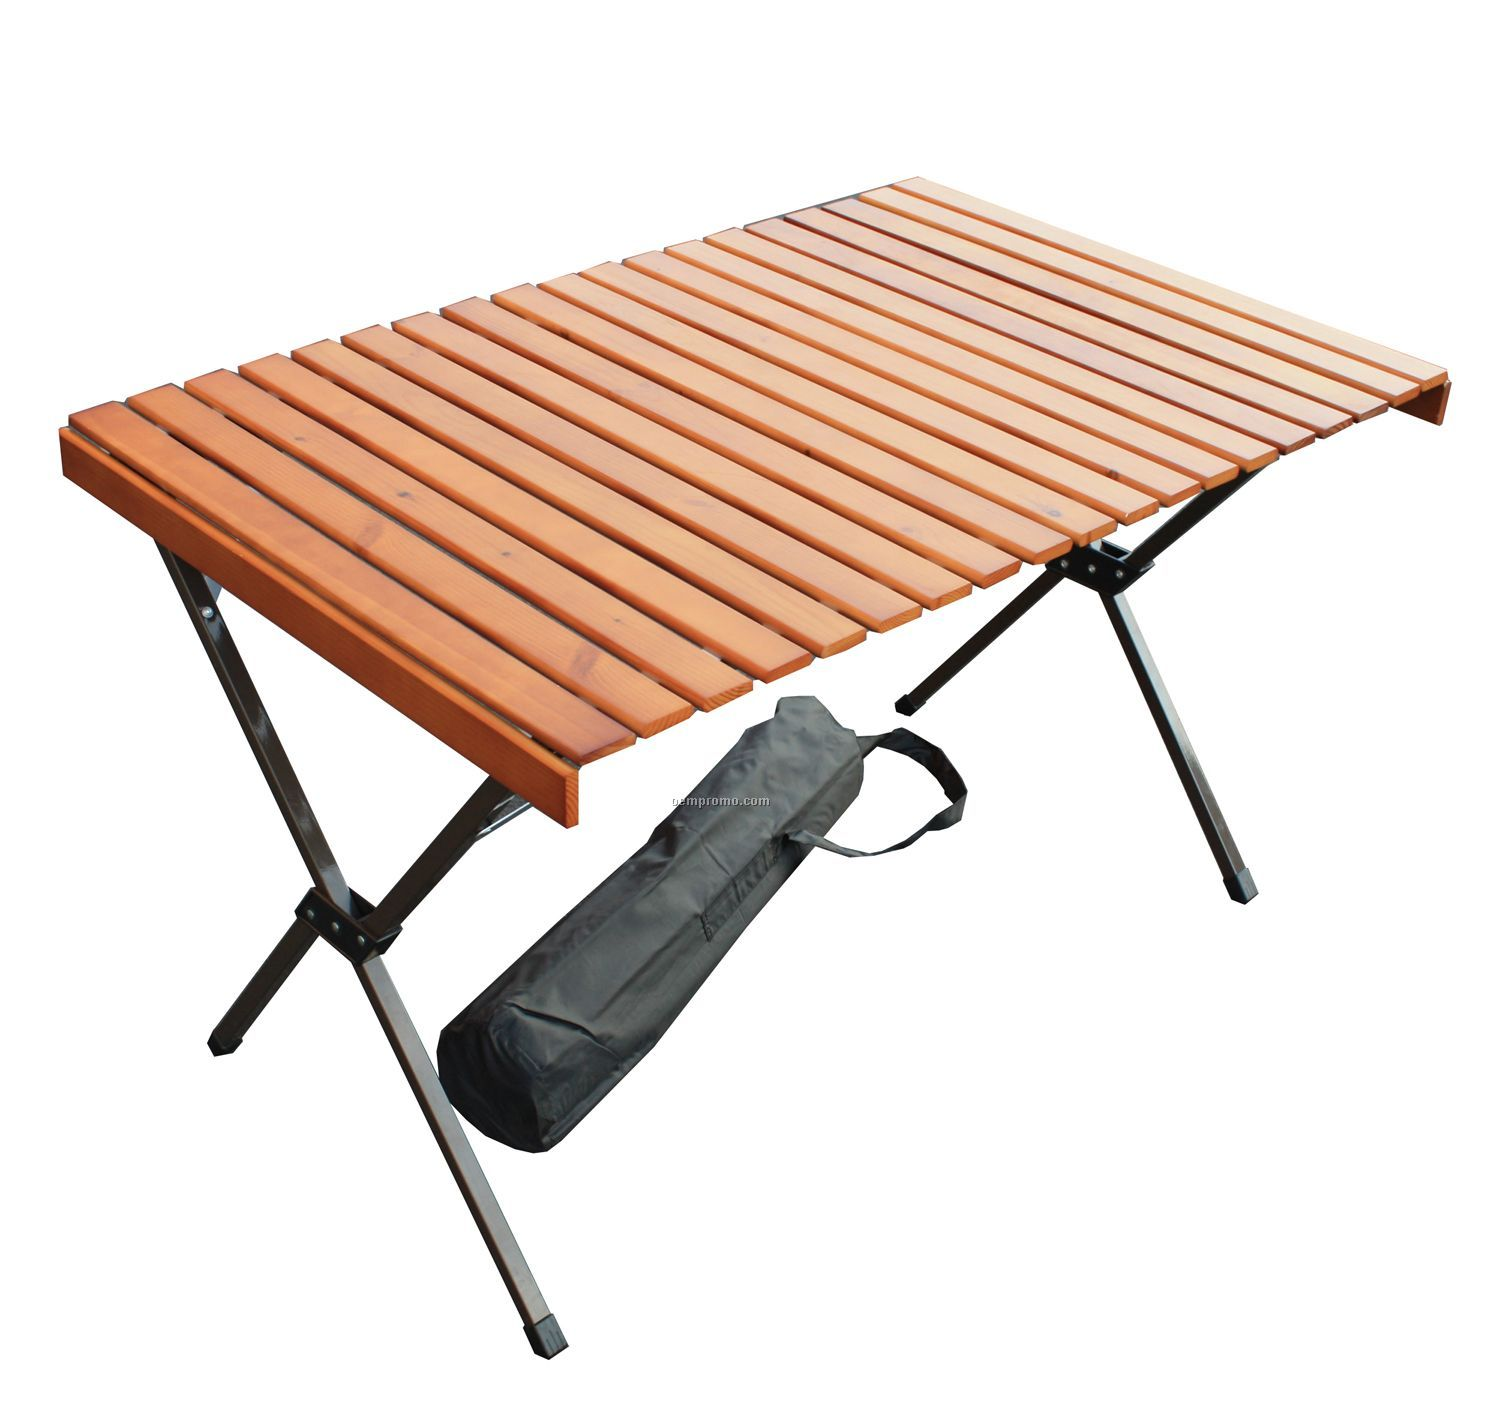 "Wood Picnic Portable Table In A Bag 43""X27""X27"" China Wholesale Wood Picnic"